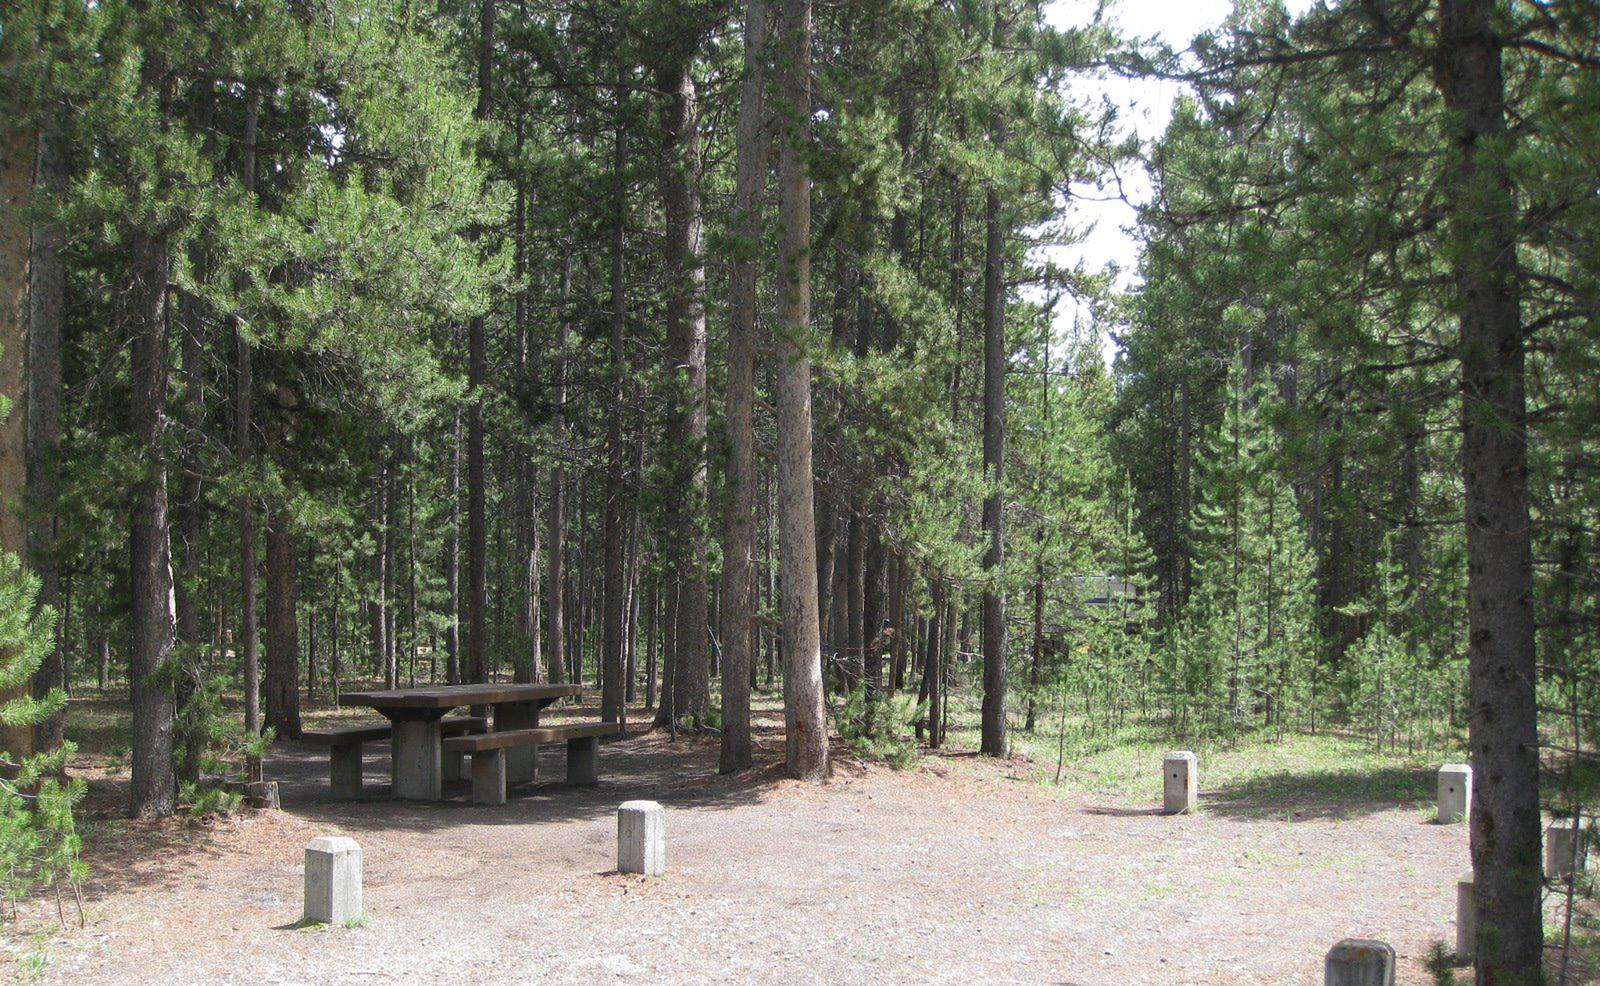 Site C20, surrounded by pine trees, picnic table & fire ringSite C20